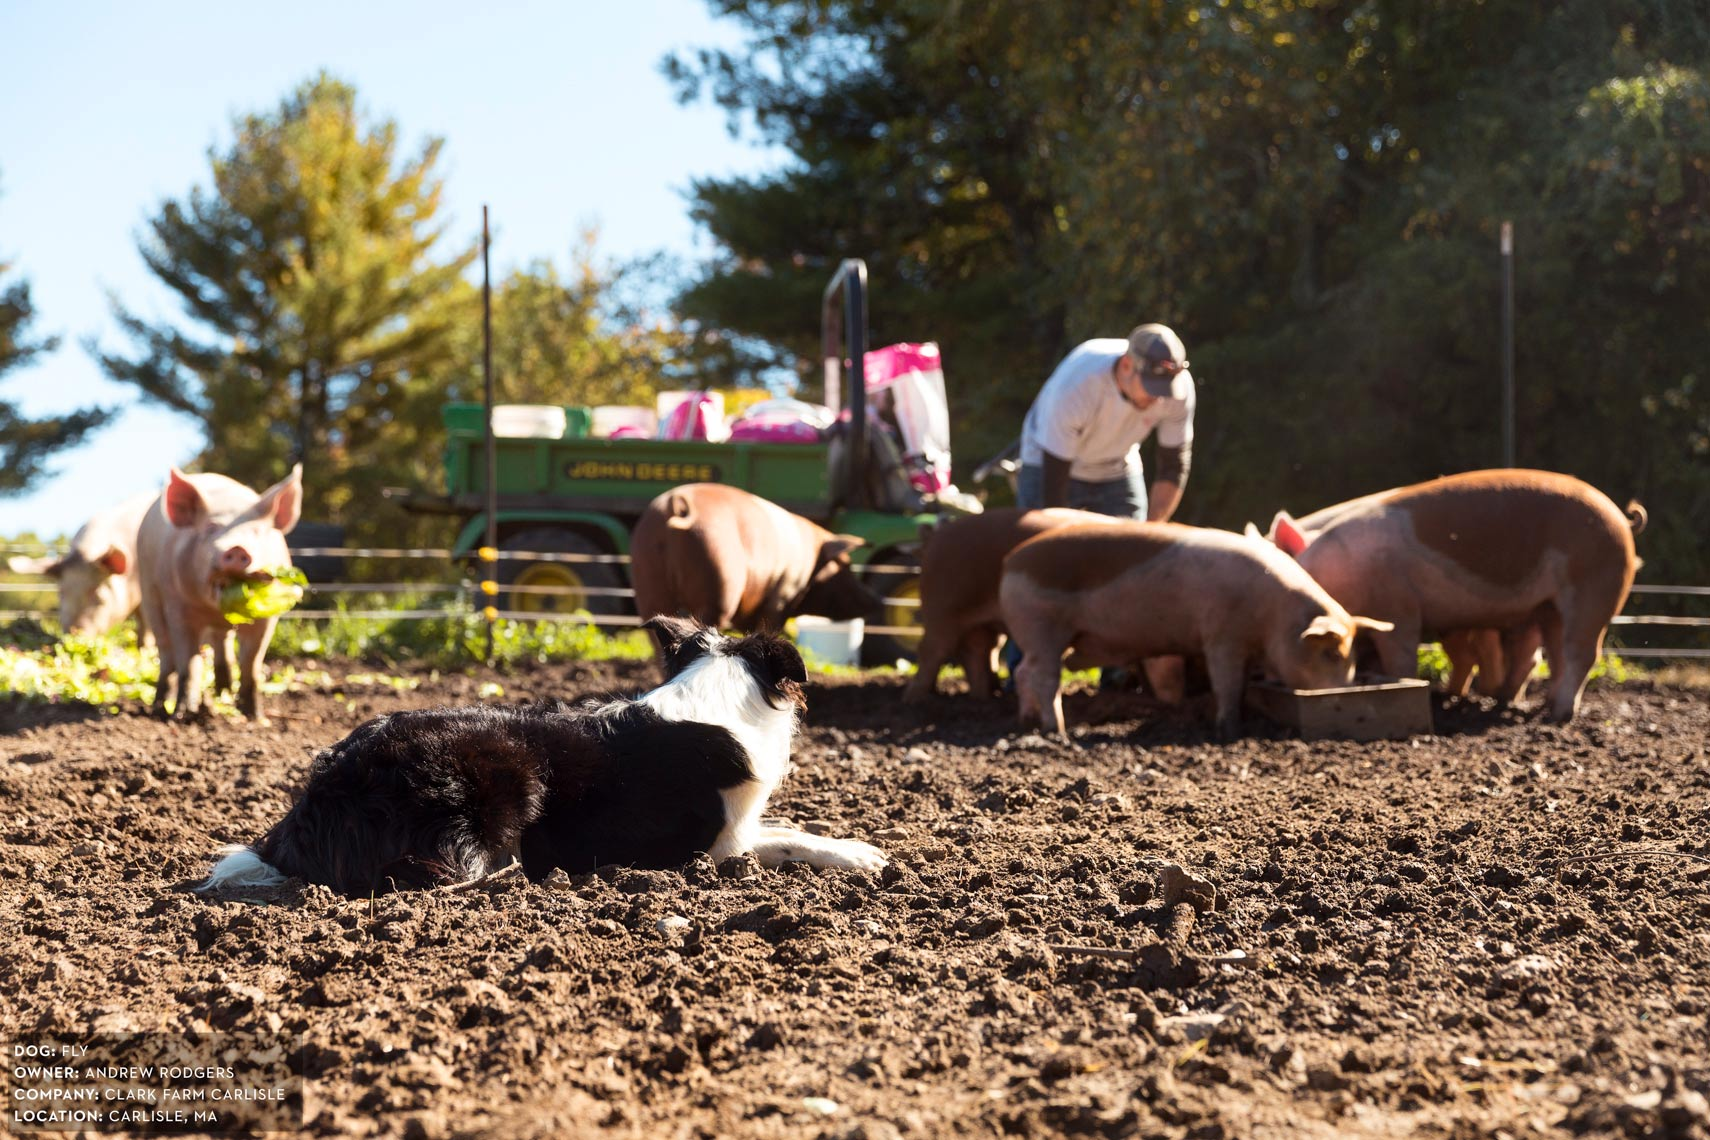 Dogs at Work: Fly herding pigs on Clark Farm Carlisle